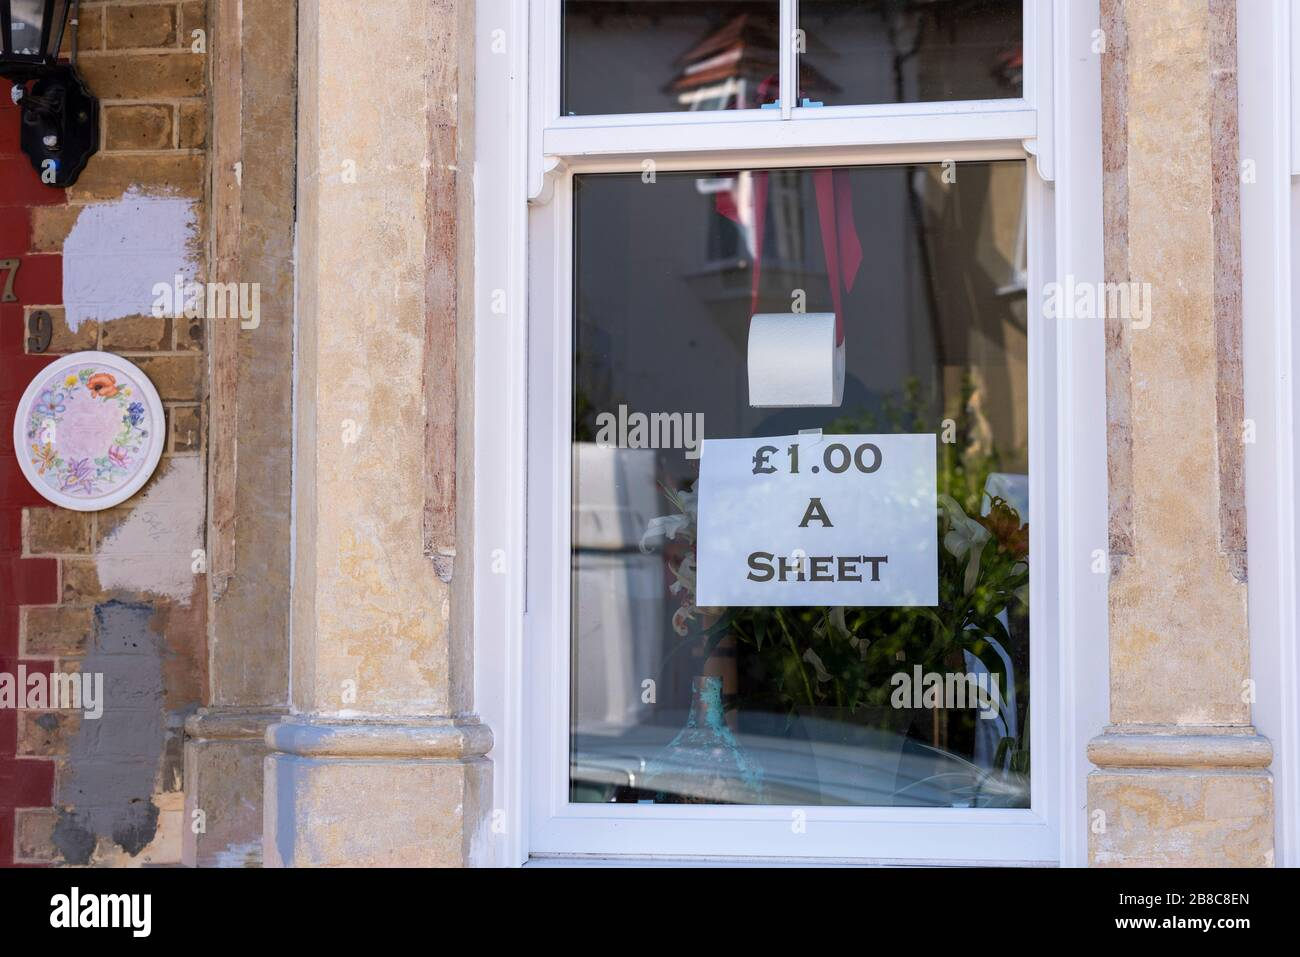 westcliff-on-sea-essex-uk-21st-march-2020-a-humorous-sign-in-a-window-in-macdonald-avenue-westcliff-is-offering-toilet-paper-at-1-per-sheet-other-signs-are-notifying-of-closures-and-a-shop-has-supplies-of-toilet-paper-and-hand-sanitizer-credit-avpicsalamy-live-news-2B8C8EN.jpg